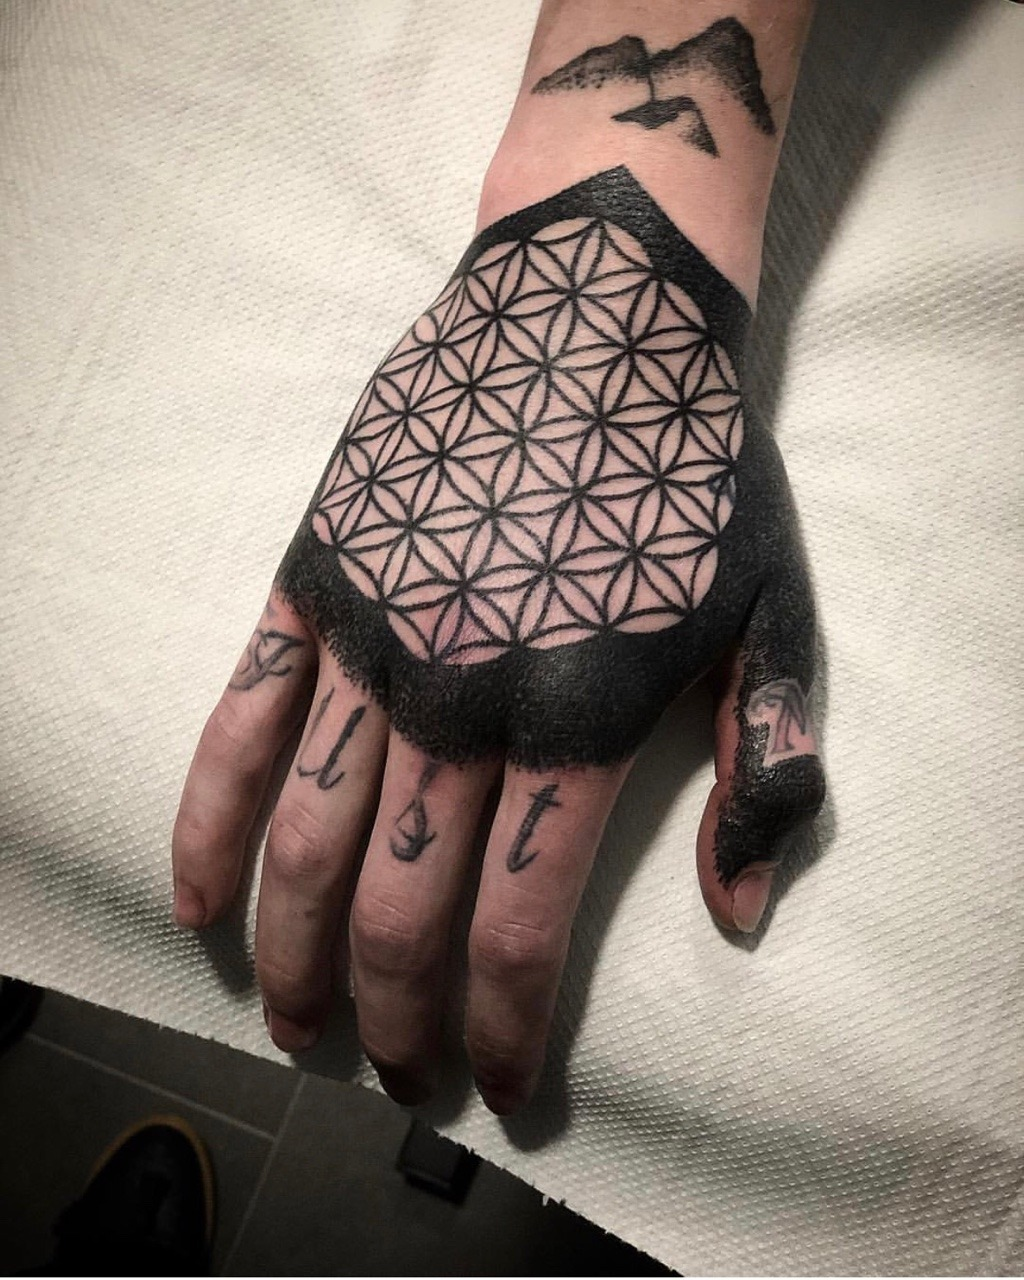 Flower of life tattoo discover the beauty and the meaning with flower of life tattoo discover the beauty and the meaning with these 30 ideas izmirmasajfo